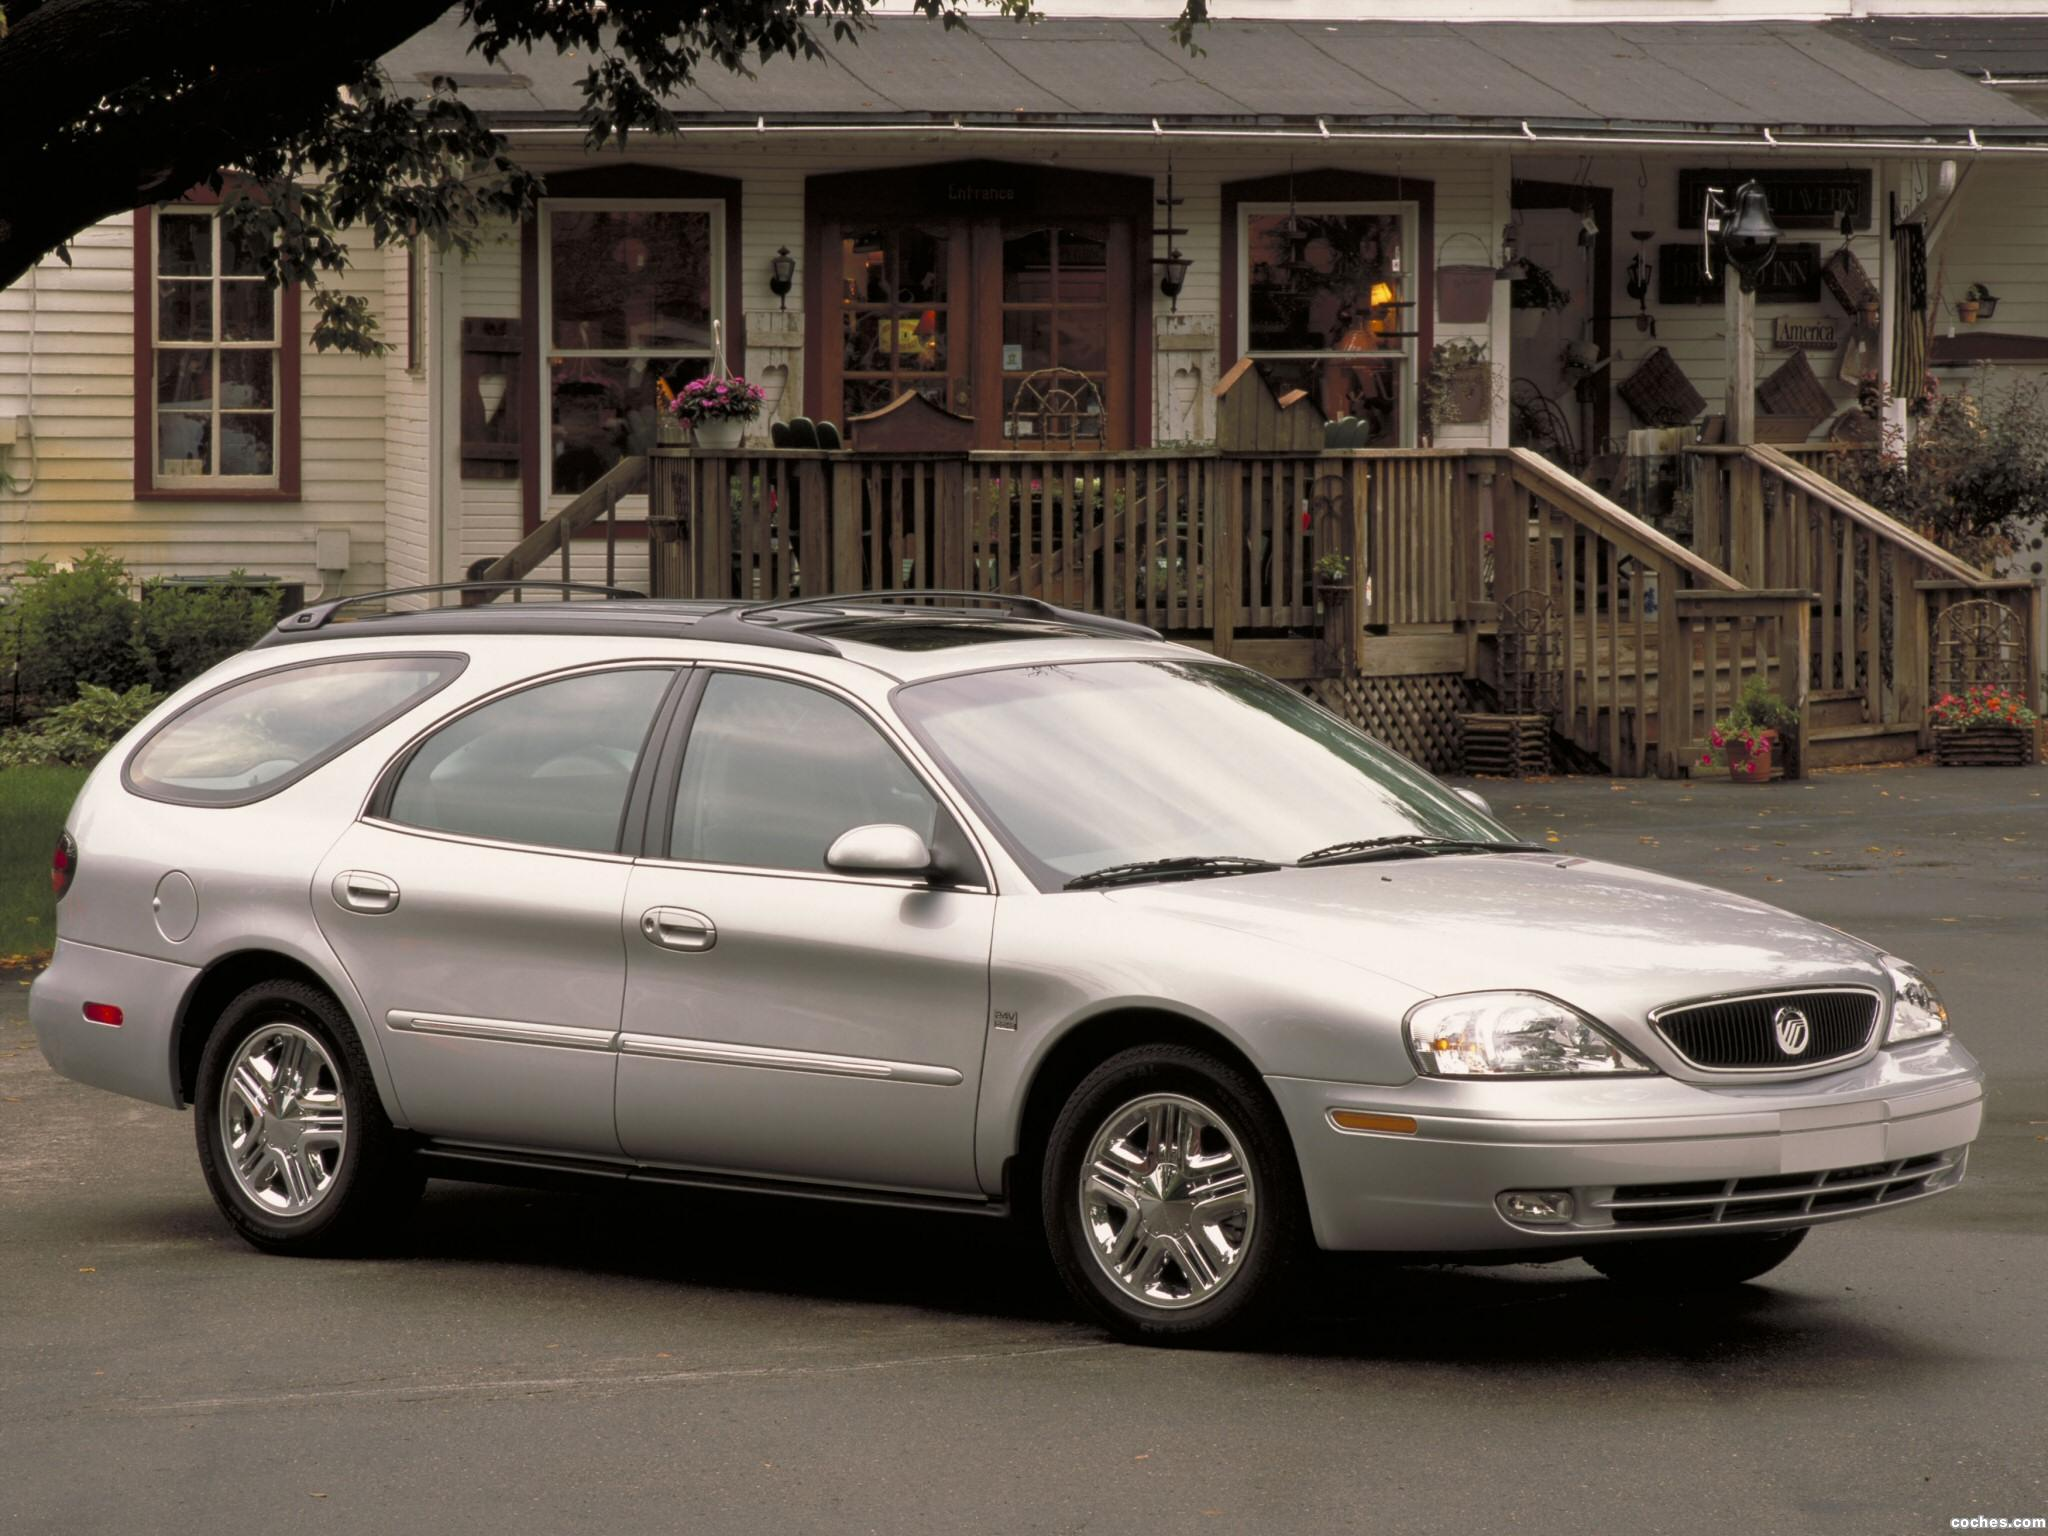 Foto 0 de Mercury Sable Wagon 2002